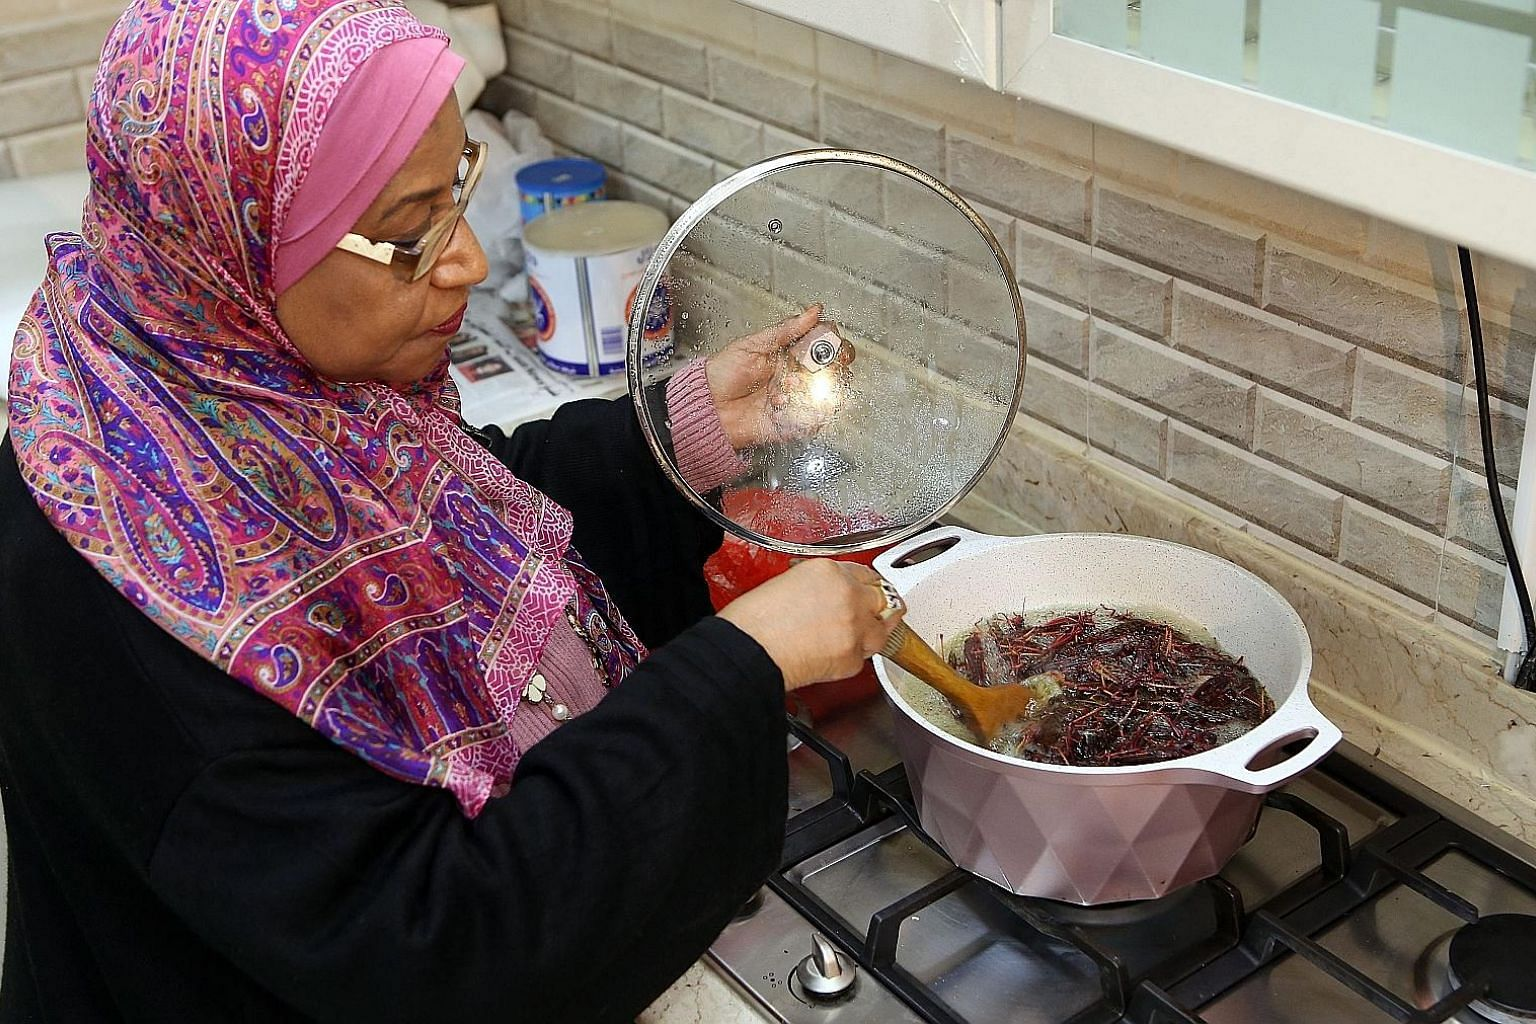 Ms Moudi Al-Miftah cooks a potful of locusts at her home in Al-Ahmadi. She puts them into boiling stock, where they turn red, filling her kitchen with an aroma similar to stewing mutton. A locust vendor in a market in Kuwait with a bag of edible inse